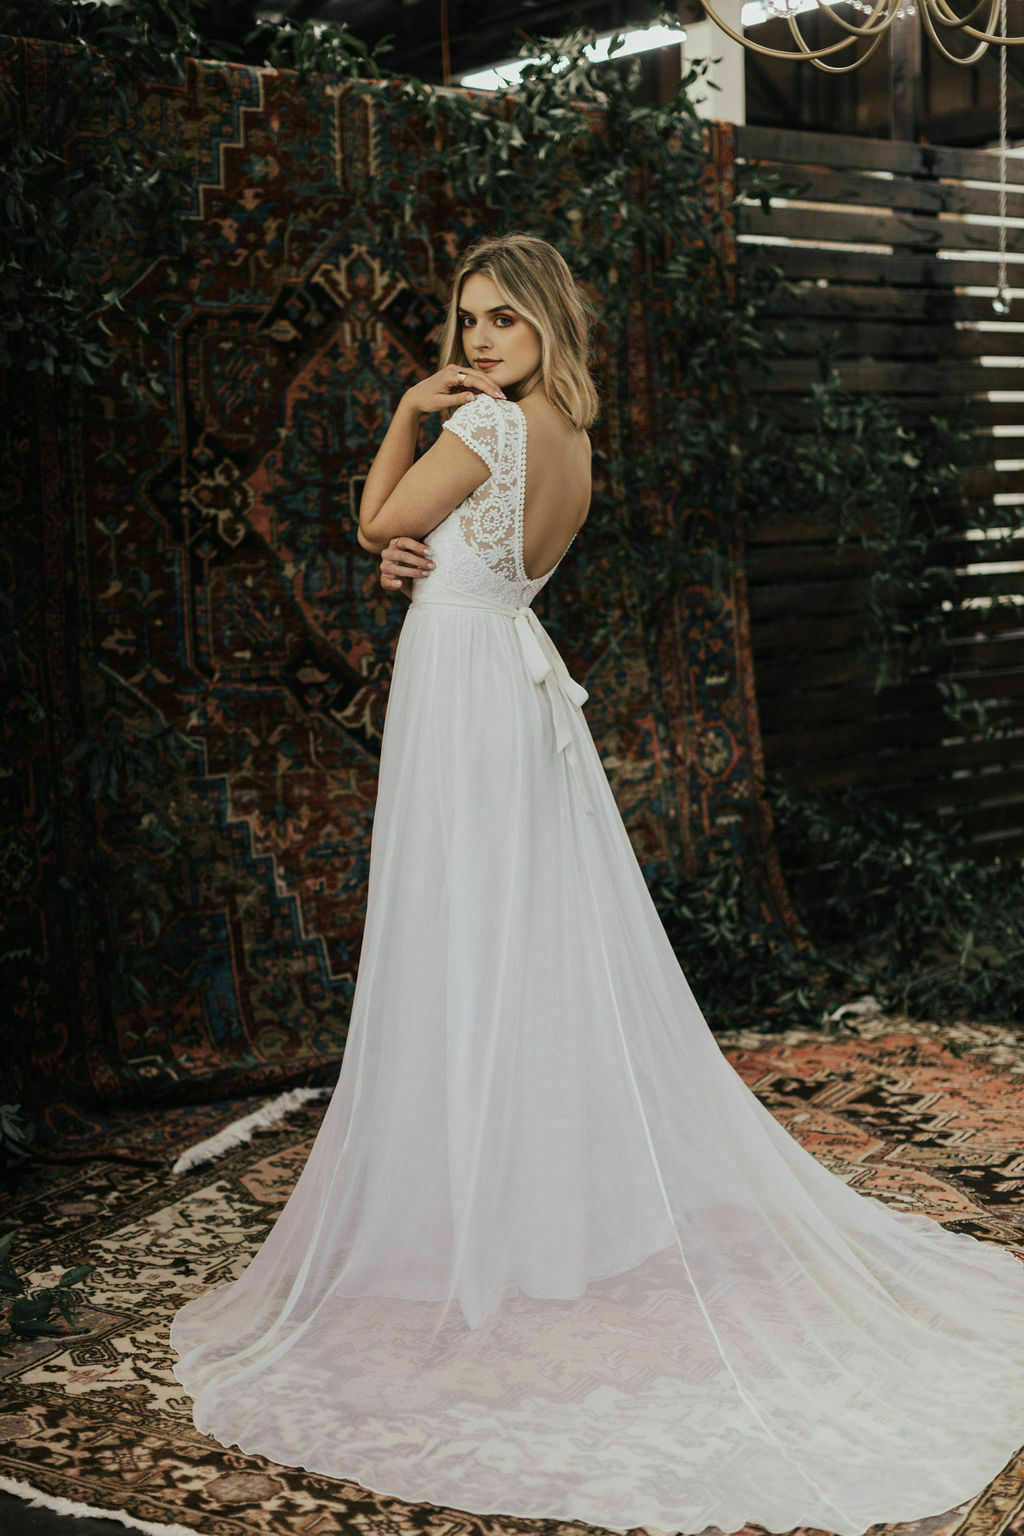 Natalie-mixed-lace-and-silk-wedding-dress-with-front-slit-and-waist-sash